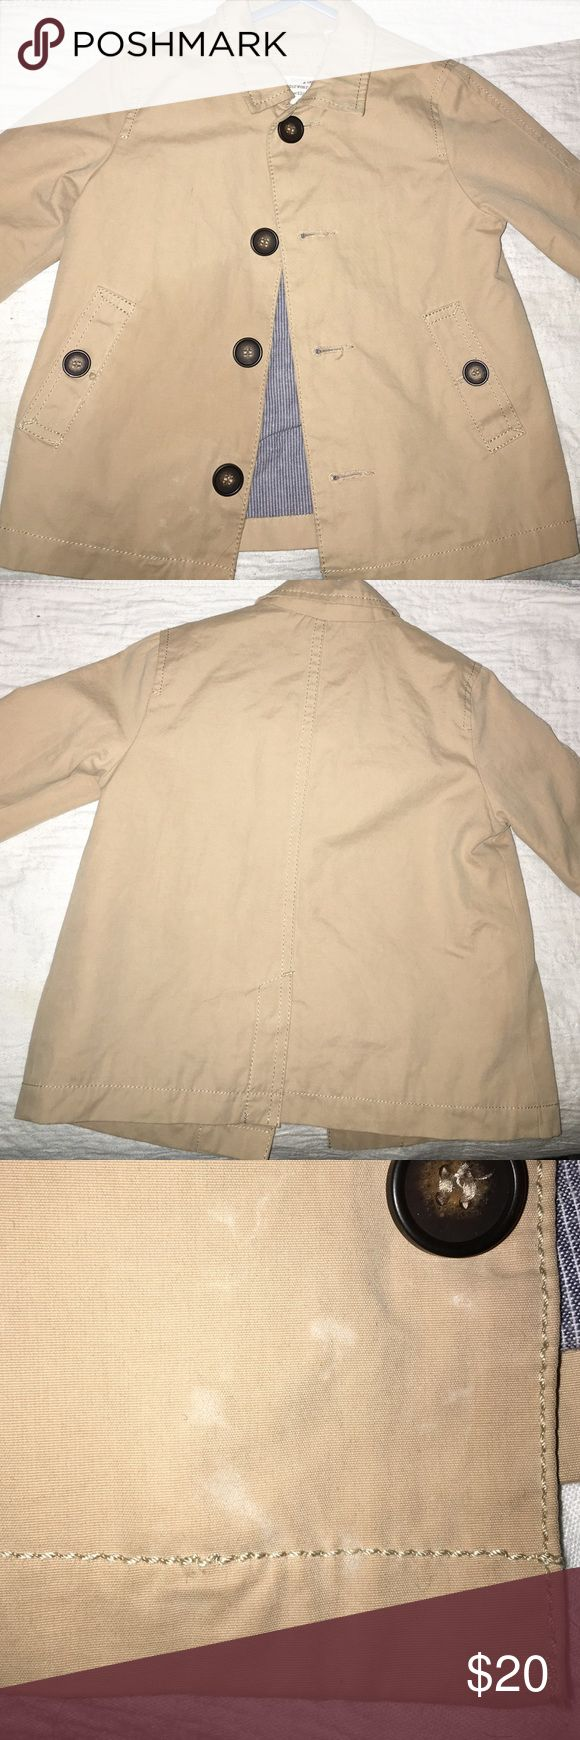 Zara Baby Boy Trench Coat Love this trench coat great for the fall as well as the spring, worn only twice. Also runs a little big my son wore it last when he was about 14 months. Minor stain shown closer in the last picture Jackets & Coats